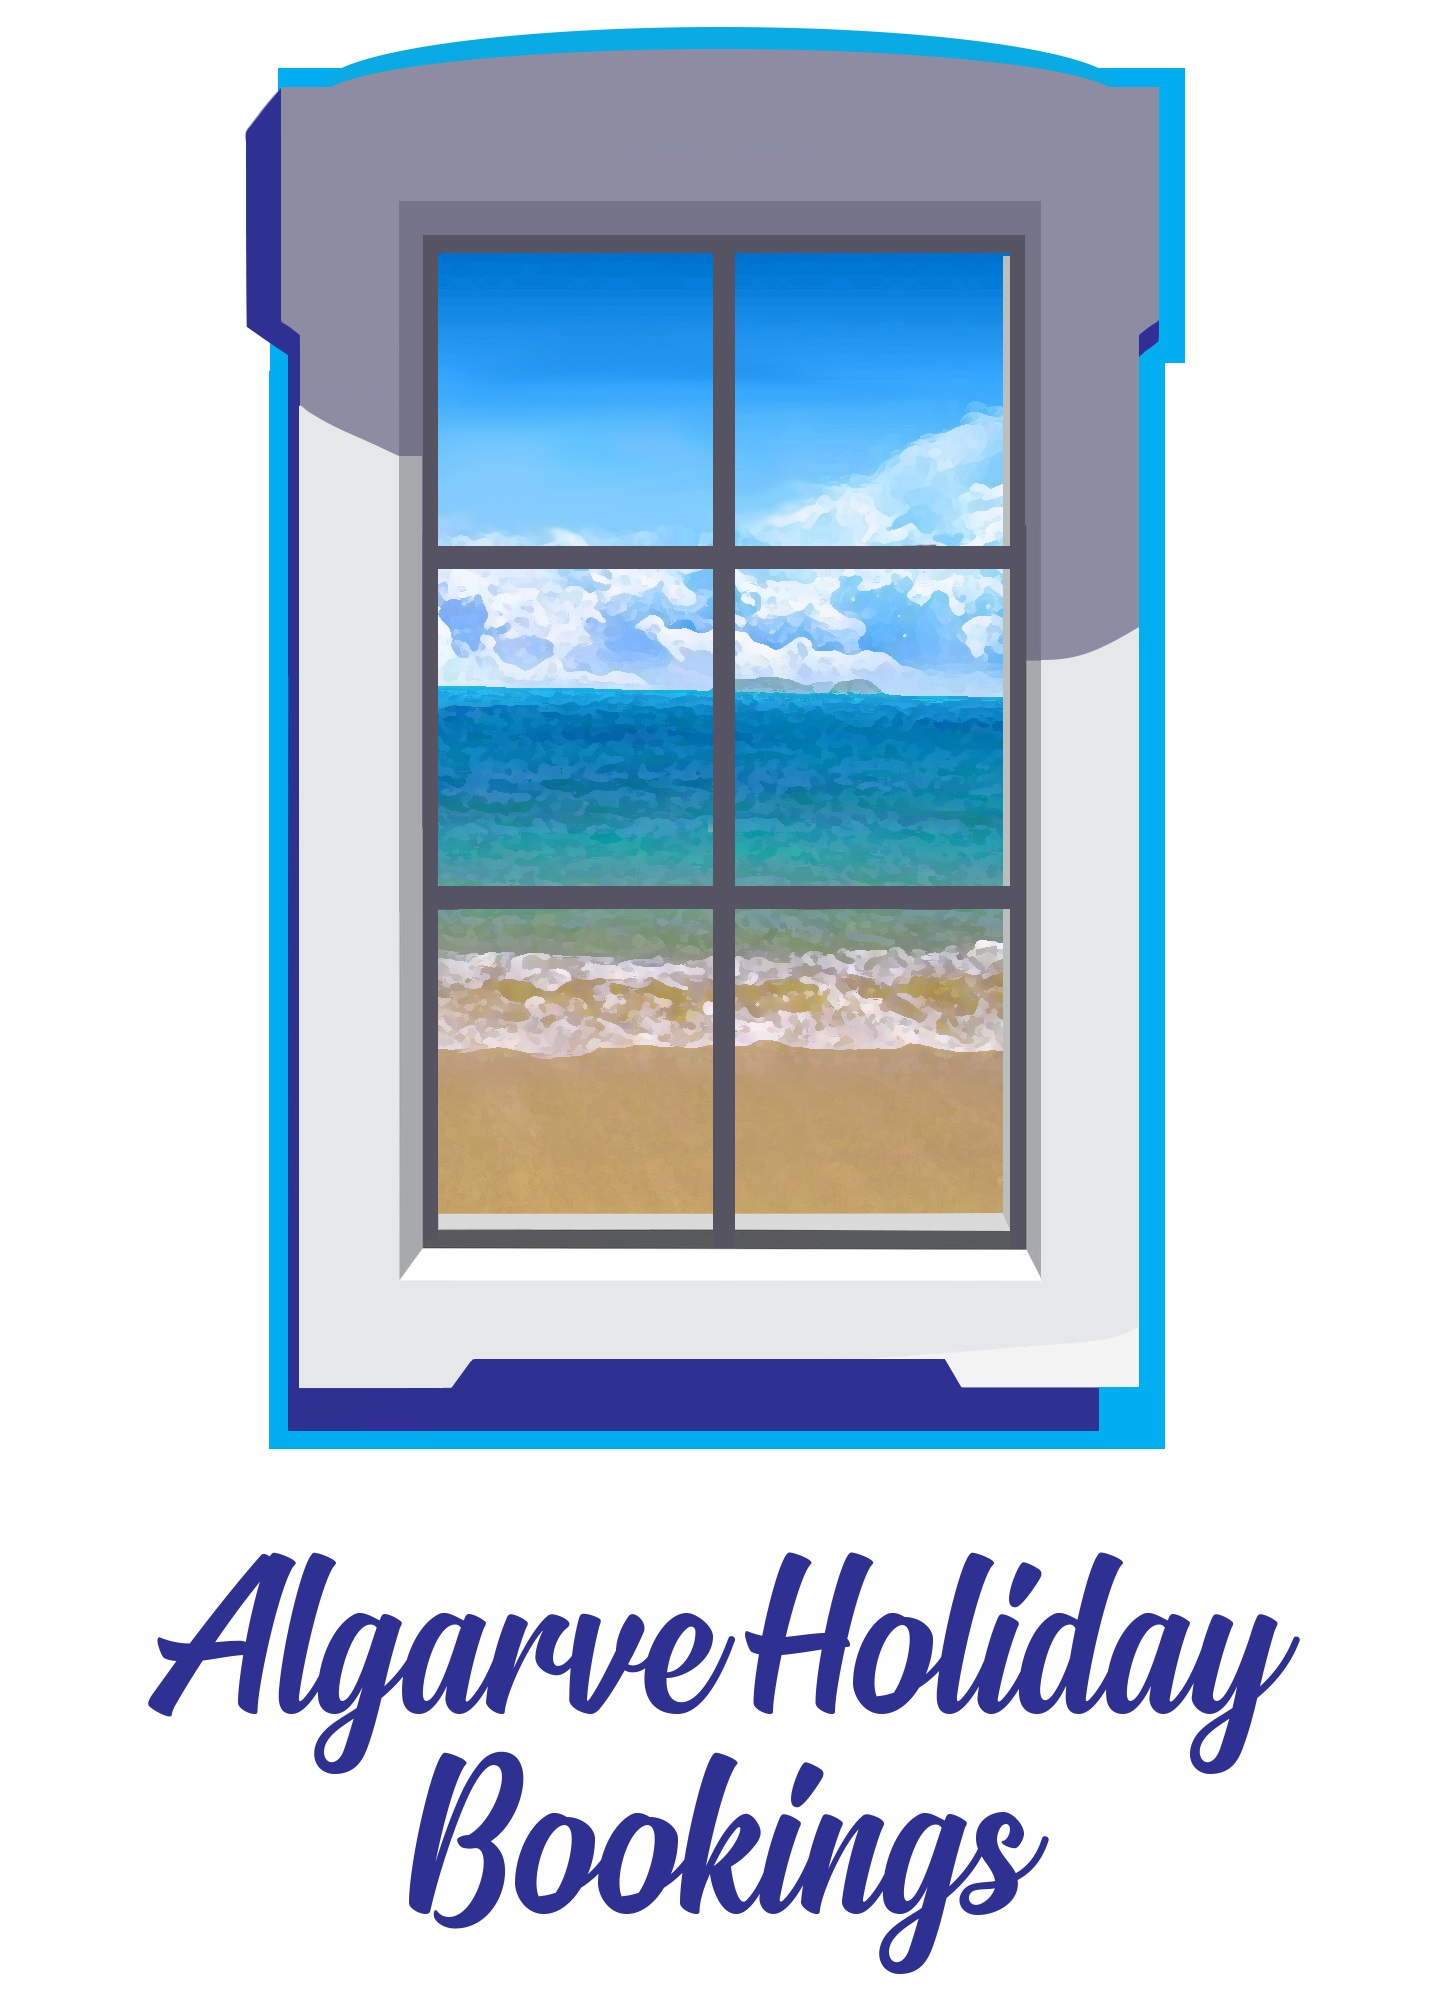 Logótipo Algarve Holidays Booking